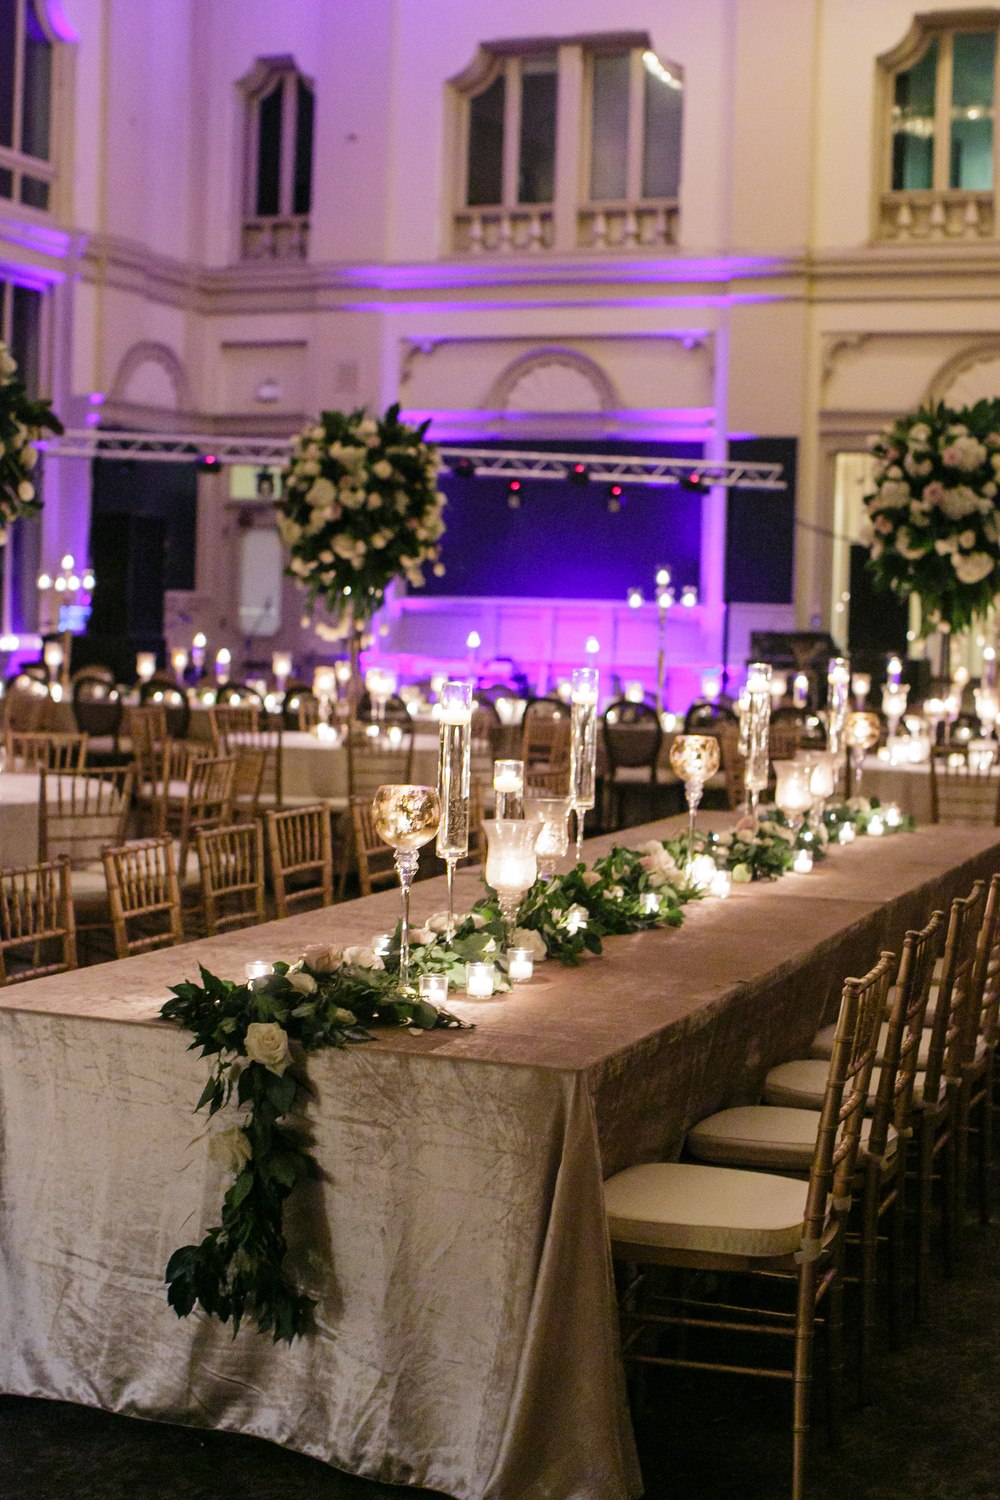 How to transform an open ballroom with stunning decor | Sapphire Events | Greer G Photography | Board of Trade | White and Gold Wedding | Winter Wedding Inspiration | White and Green Wedding | Ballroom wedding | long floral garland